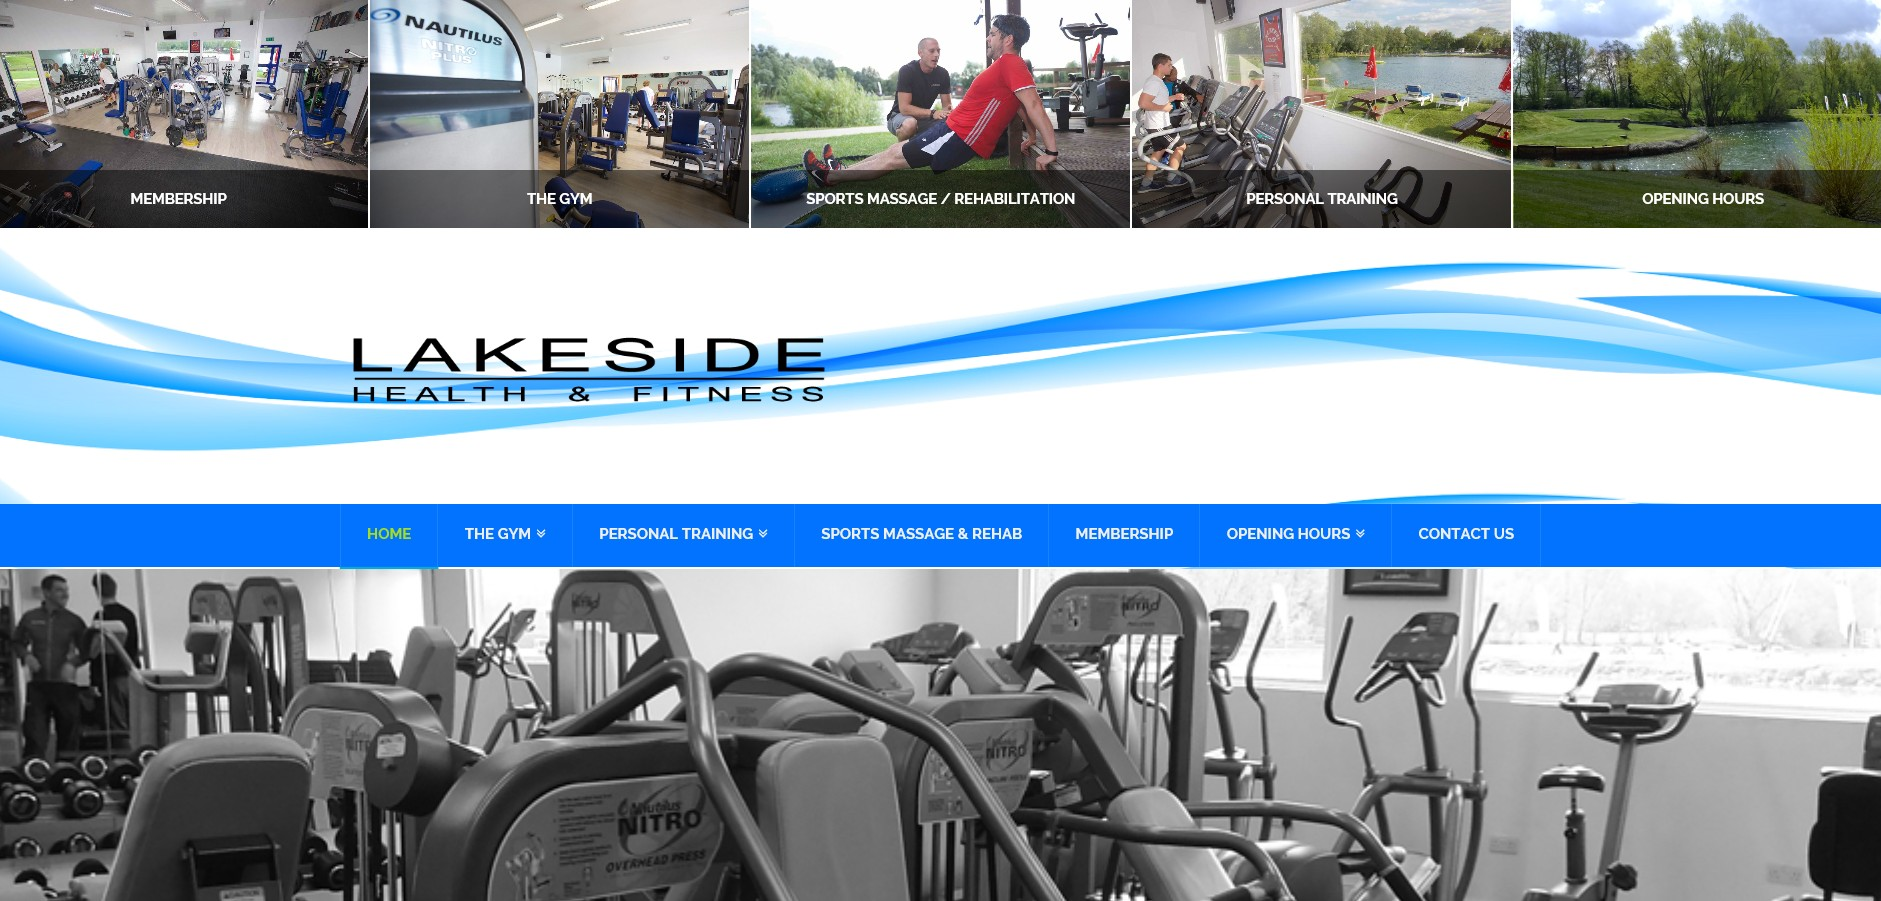 Lakeside Health and Fitness Club Website By T900 Website Design in Surrey